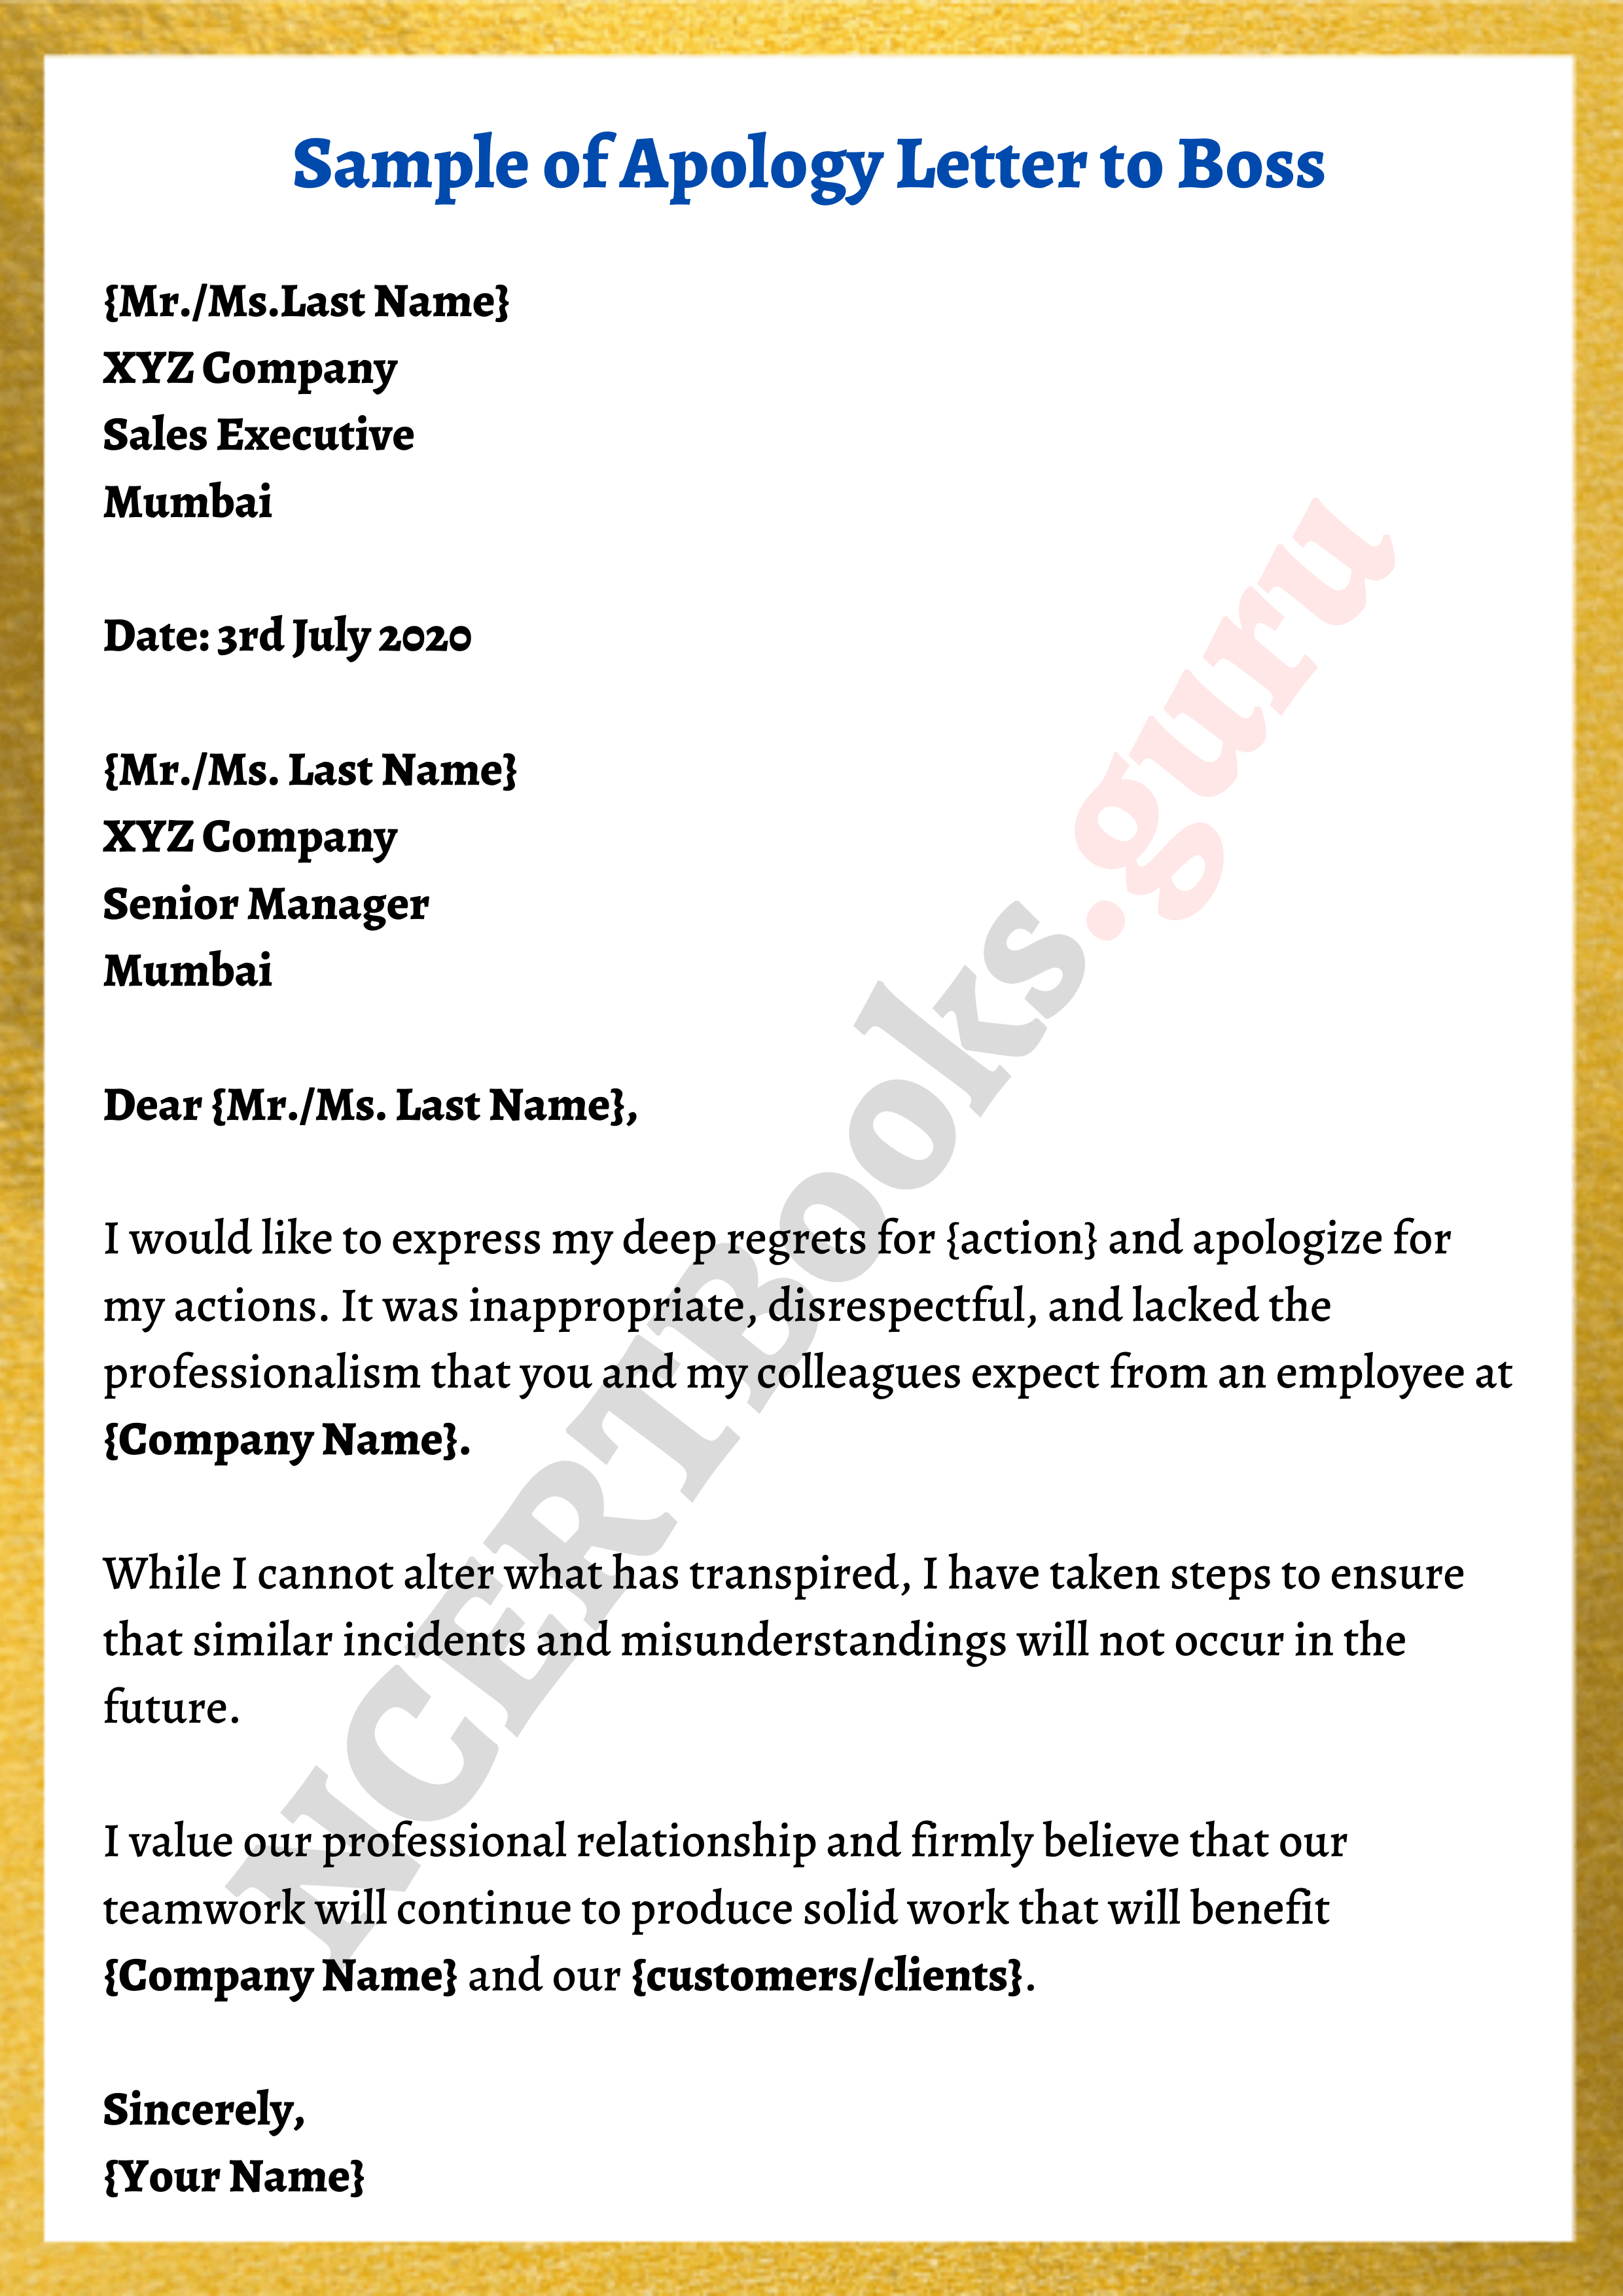 sample apology letter to boss